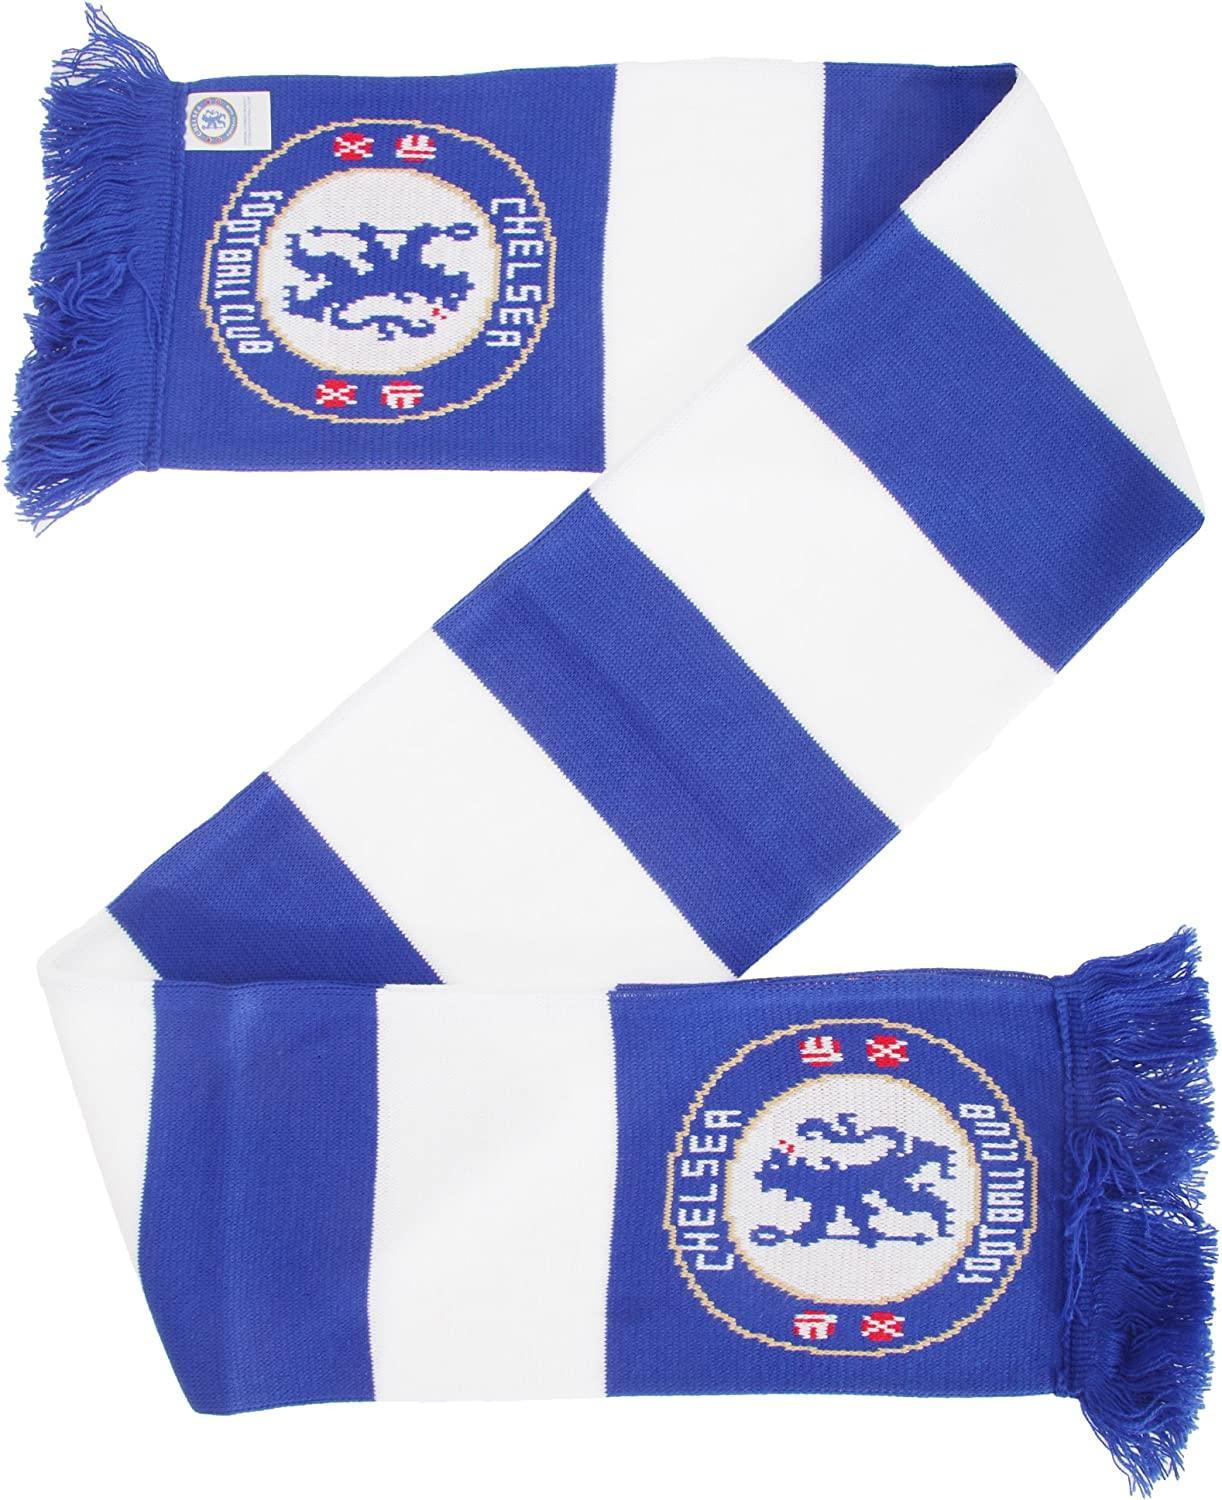 Authentic Official Licensed Soccer Scarf Chelsea F.C